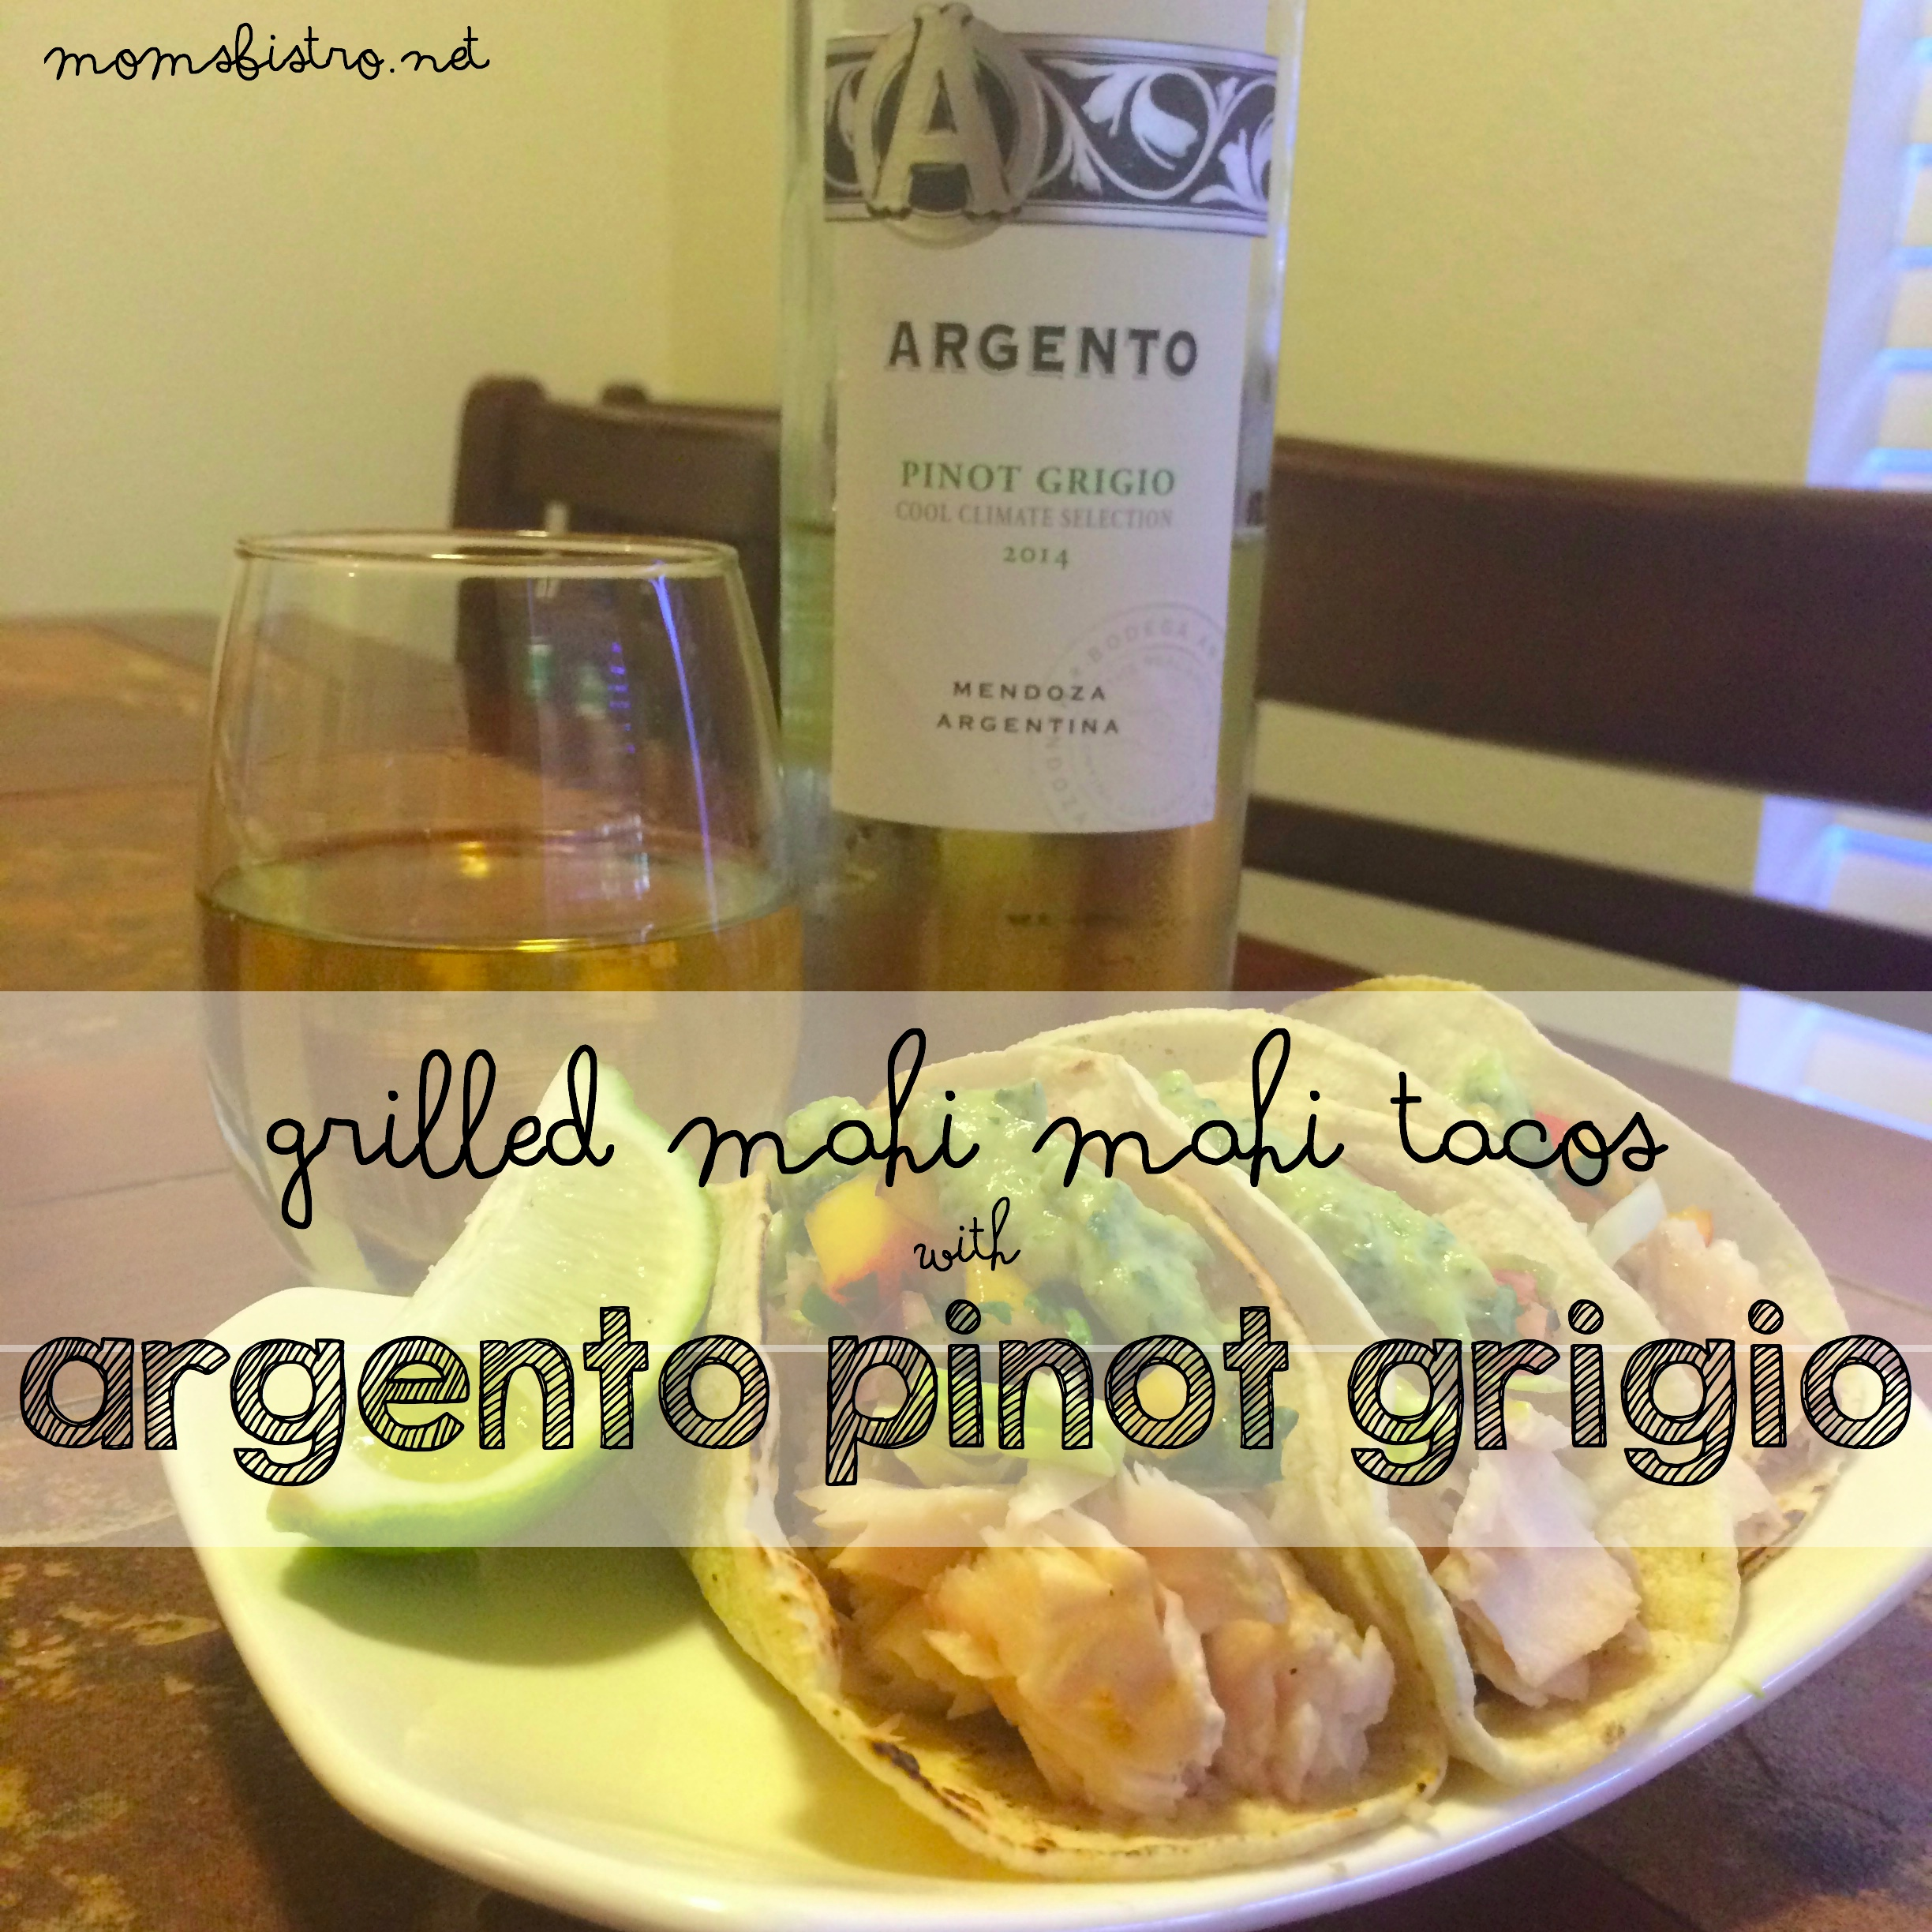 Favorite Summer Meals – Grilled Mahi Mahi Tacos with Peach Salsa and Argento Pinot Grigio